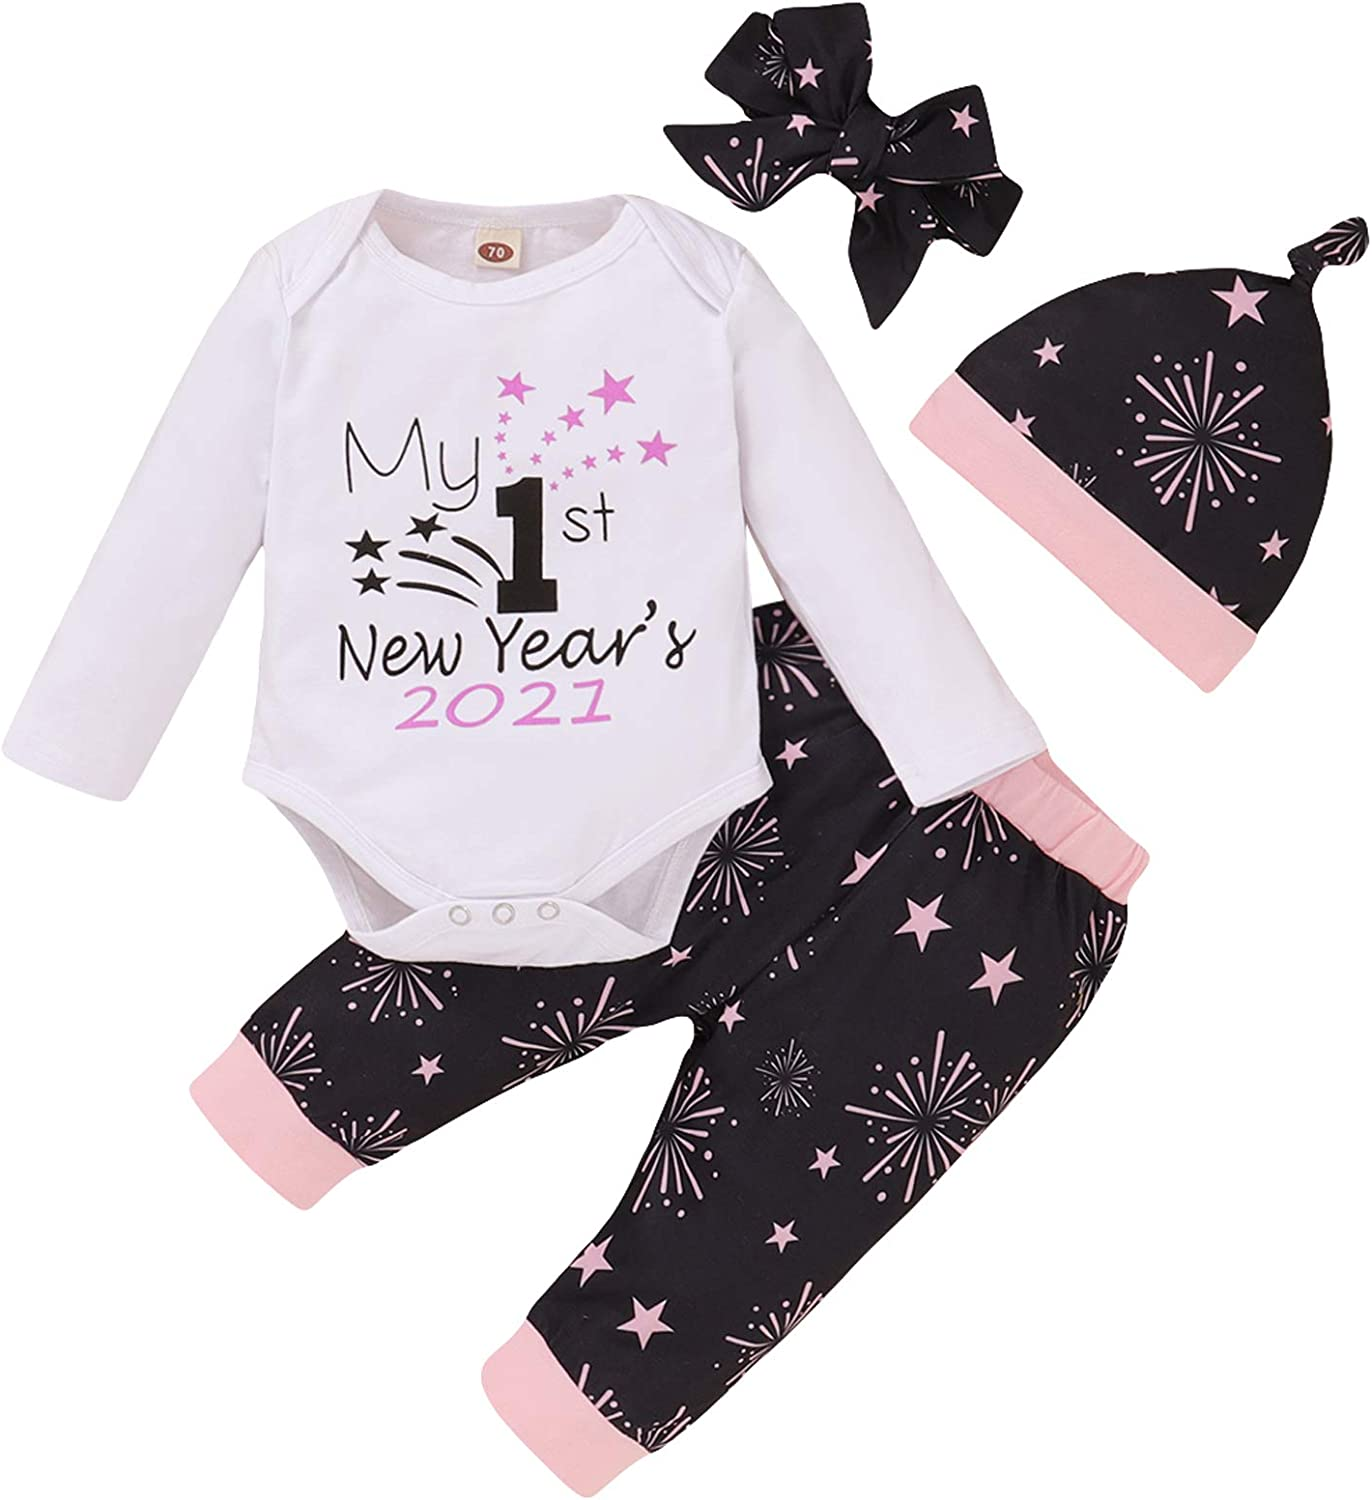 4Pcs Baby Boy Girl Christmas Outfits My 1st New Year's 2021 Romper+Fireworks Pants+Hat+Headband Clothes Set